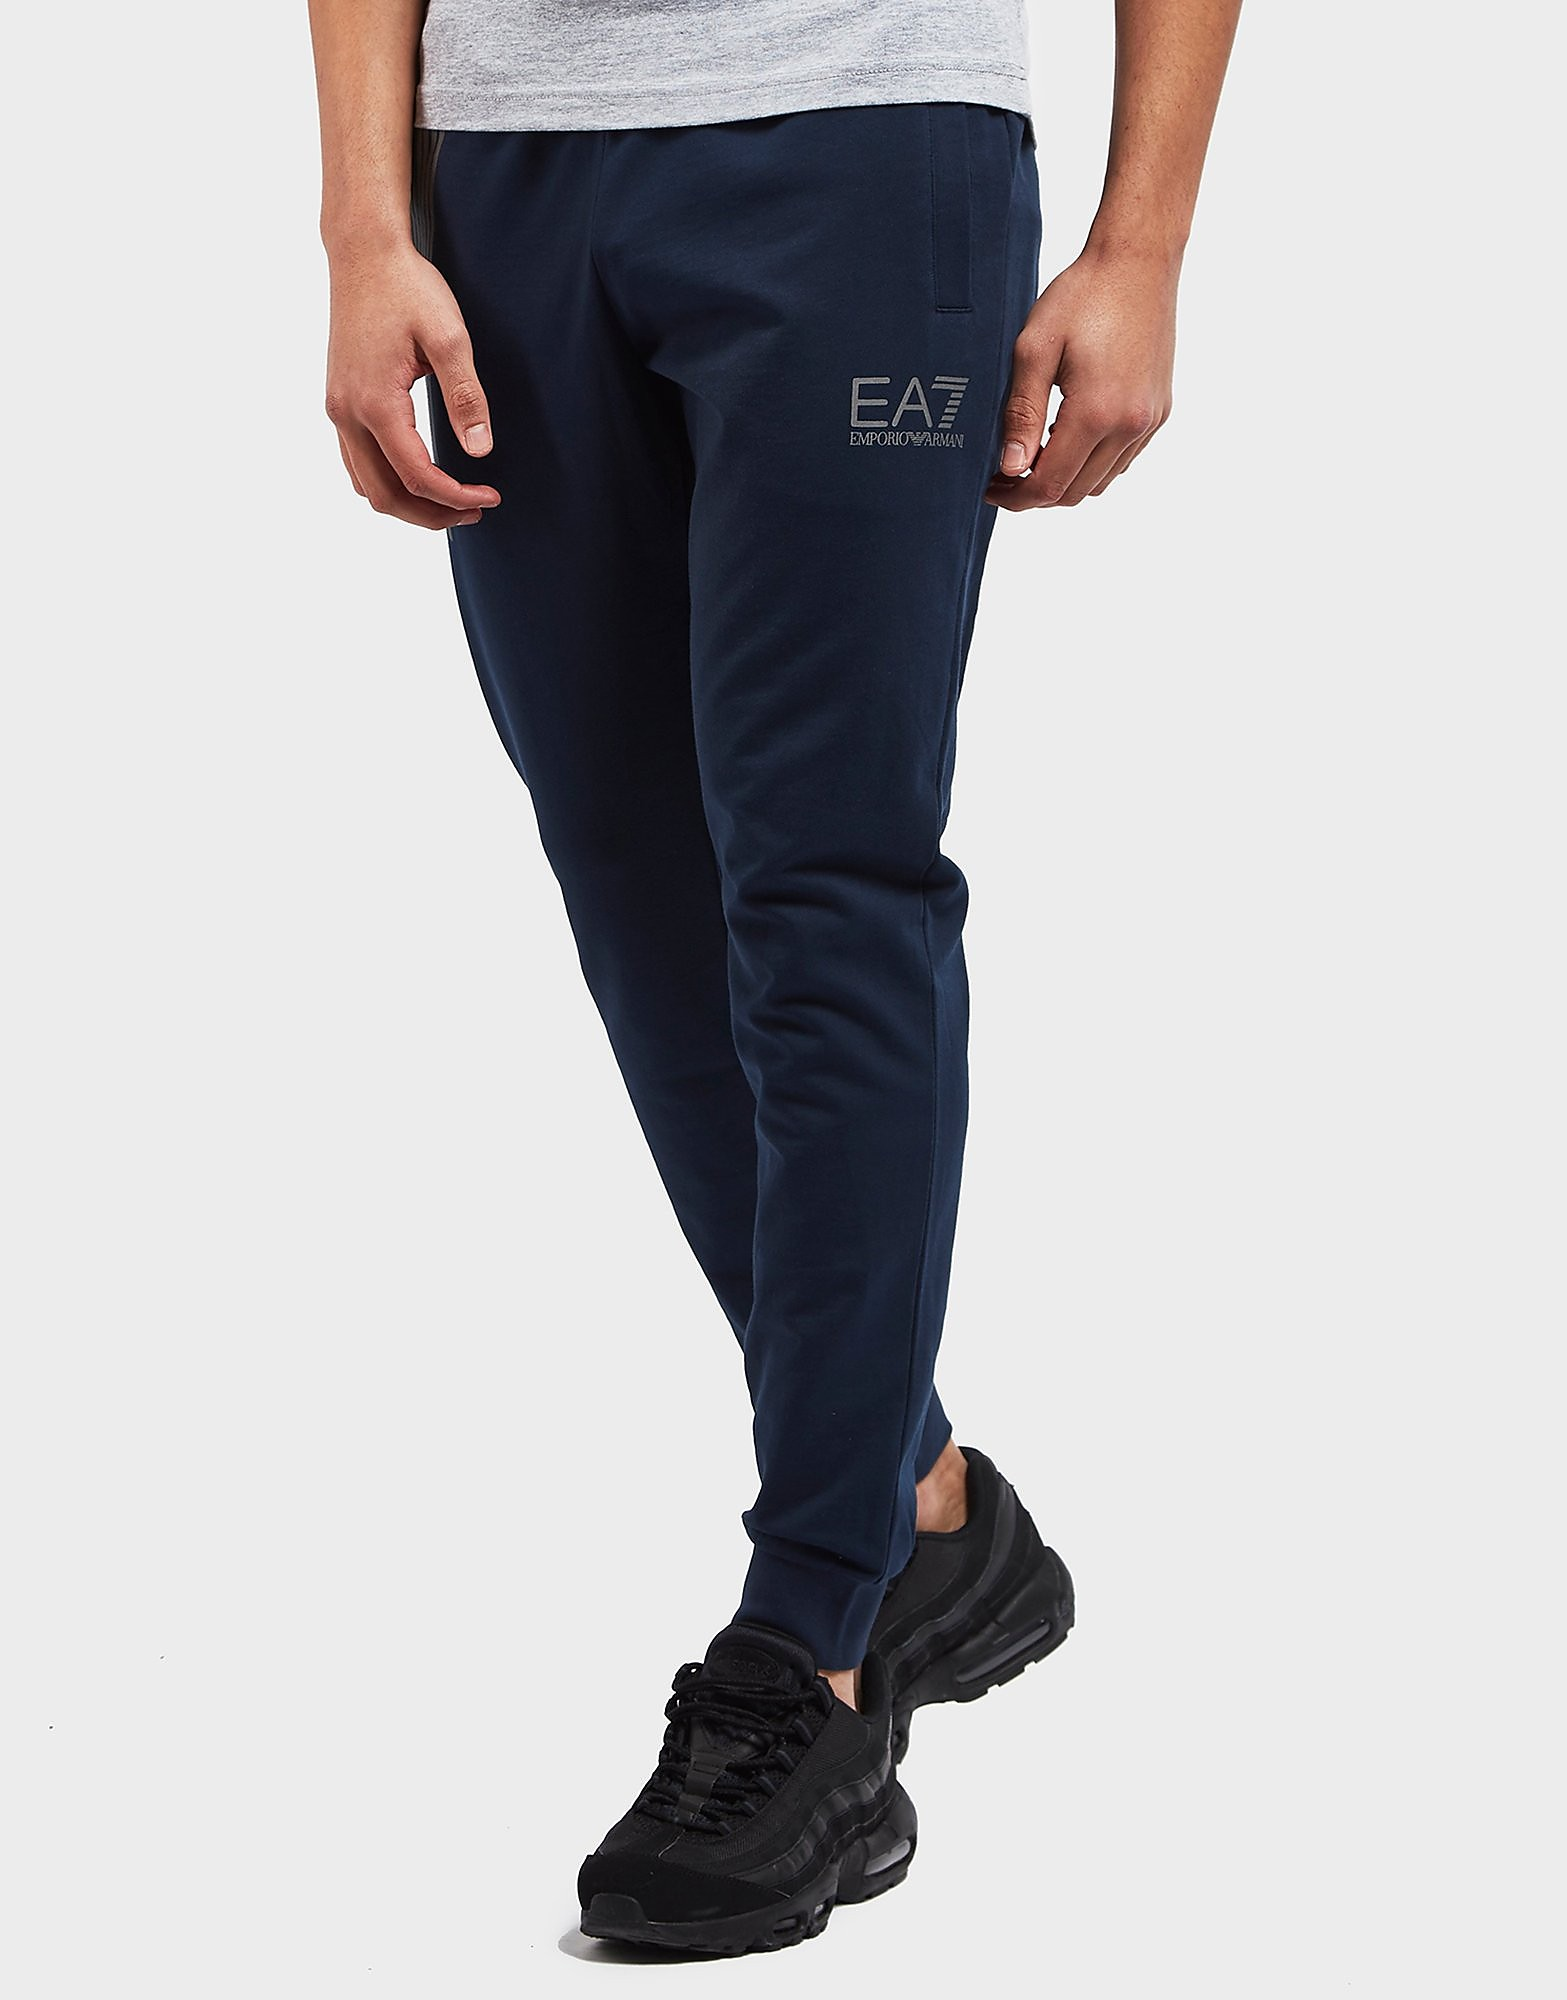 Emporio Armani EA7 7 Lines Cuffed Fleece Pants